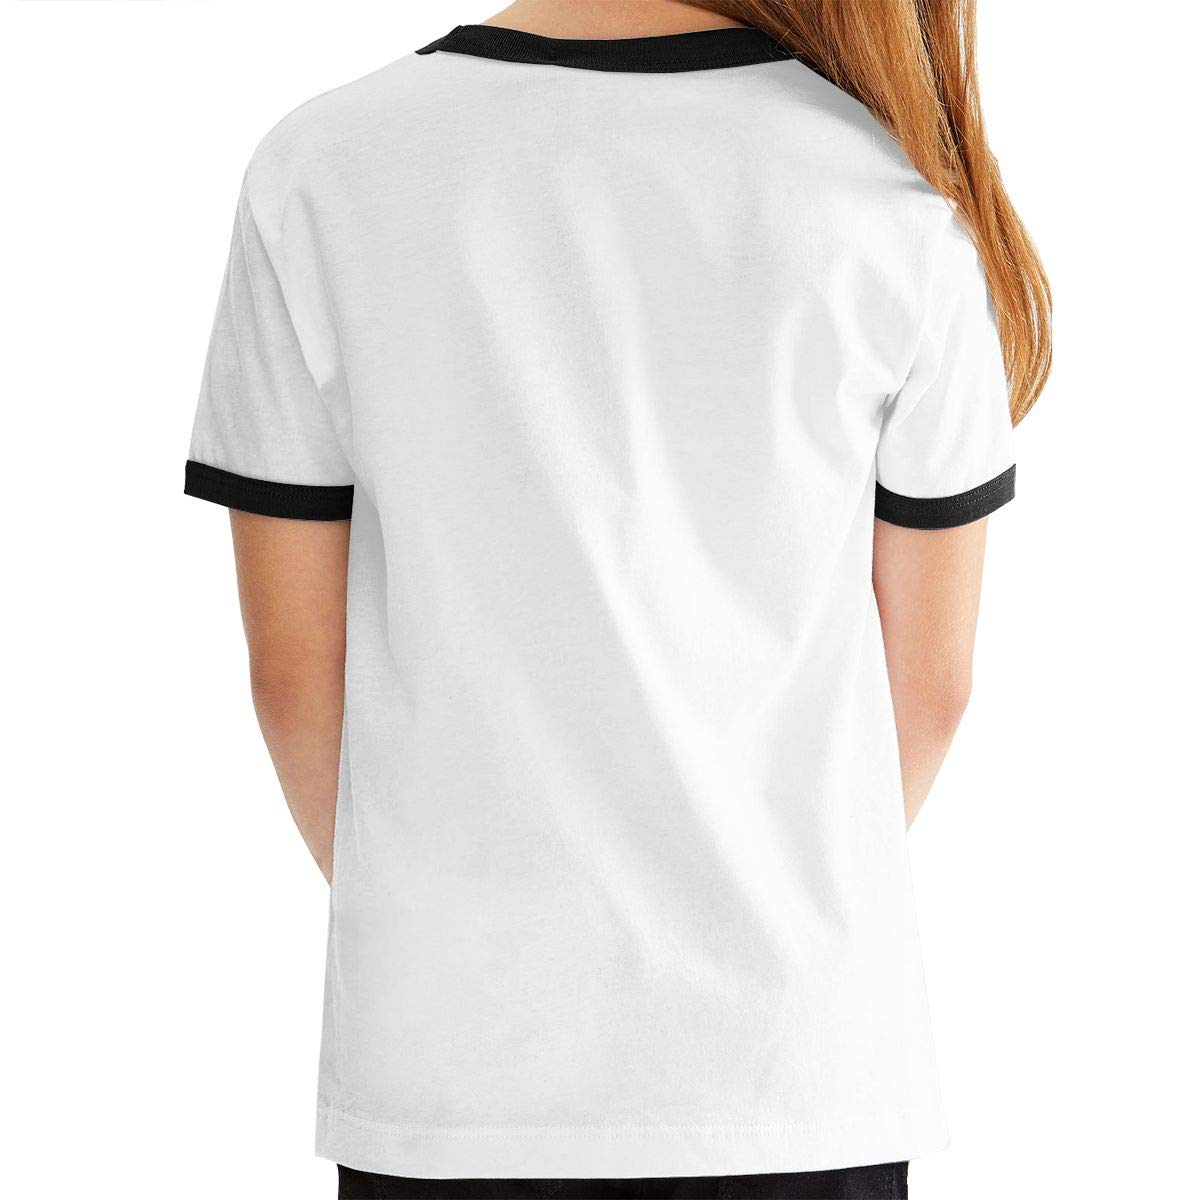 Angkella Surfer Monkey with Woodie Short-Sleeve Crew-Neck Cotton Jersey Tee for Boys Girls